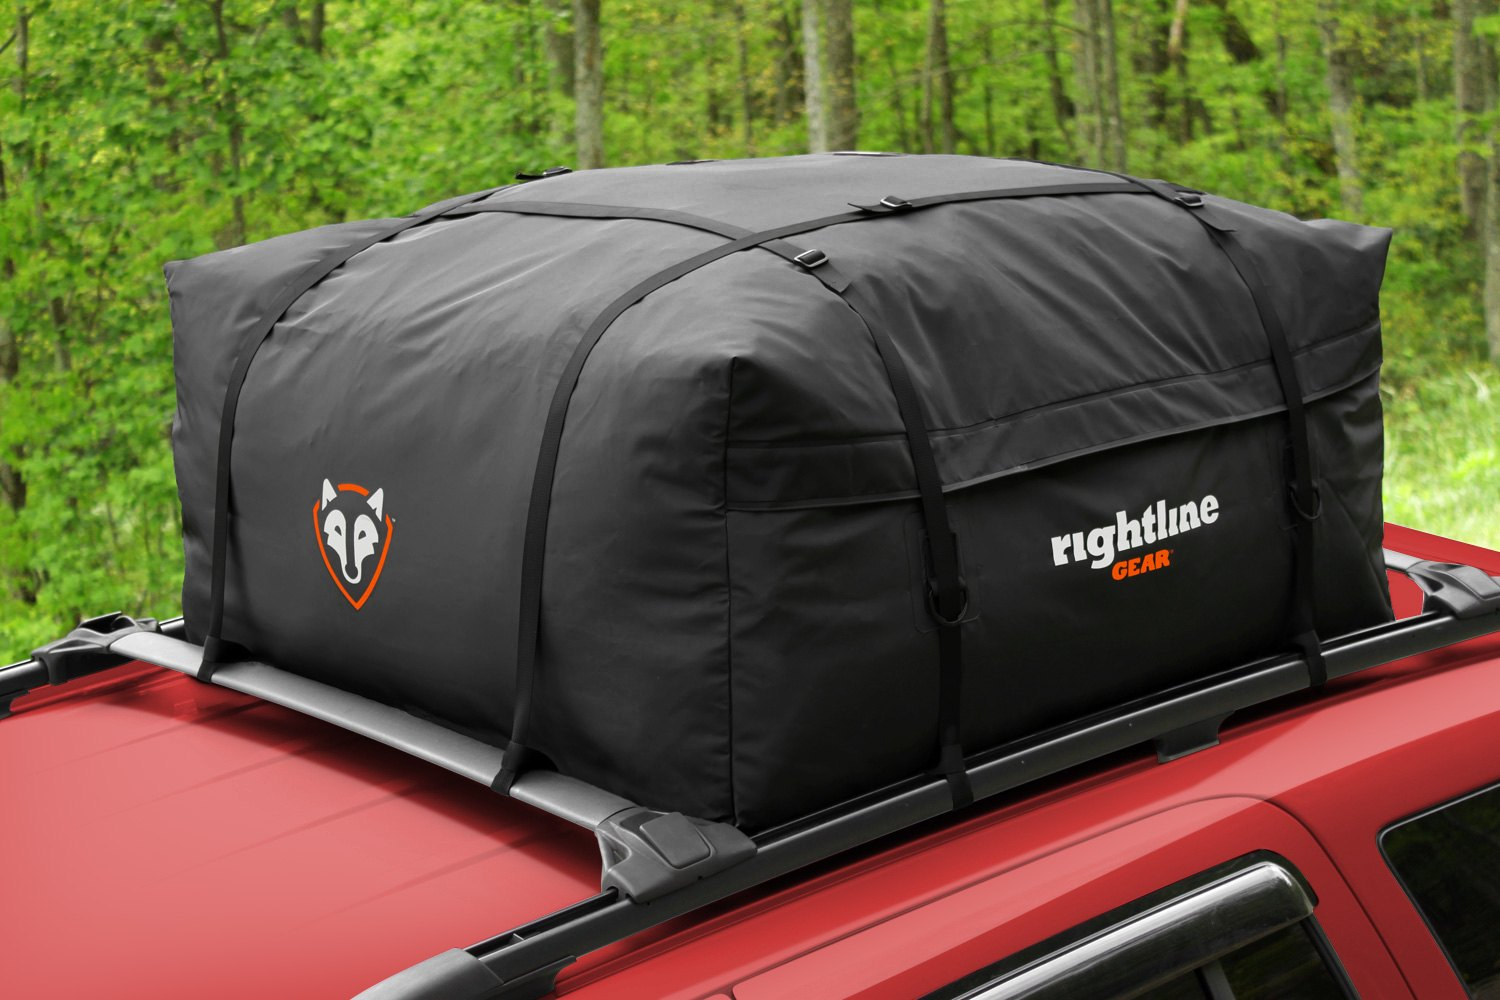 Rightline Gear Cargo Saddlebags Carriers Truck Tents